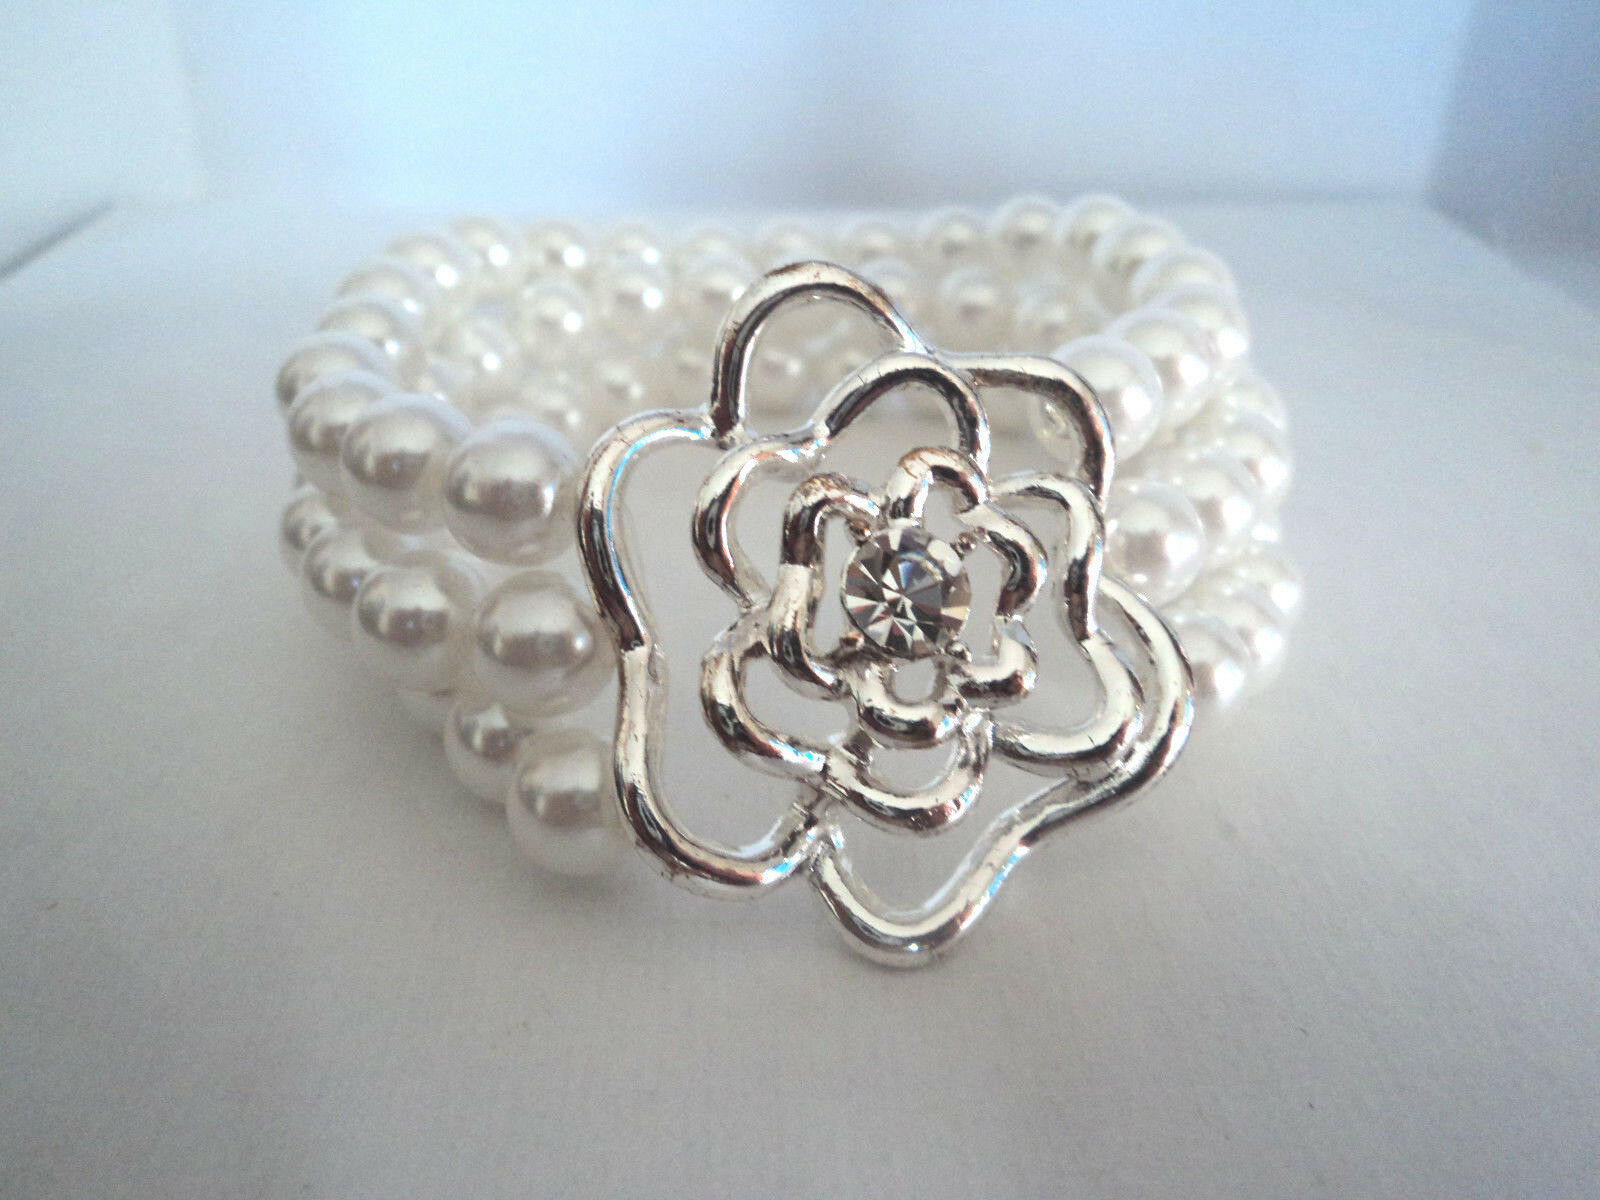 Avon Floral Bloom Pearlesque Stretch Bracelet Silver tone Rose 2009 Stock